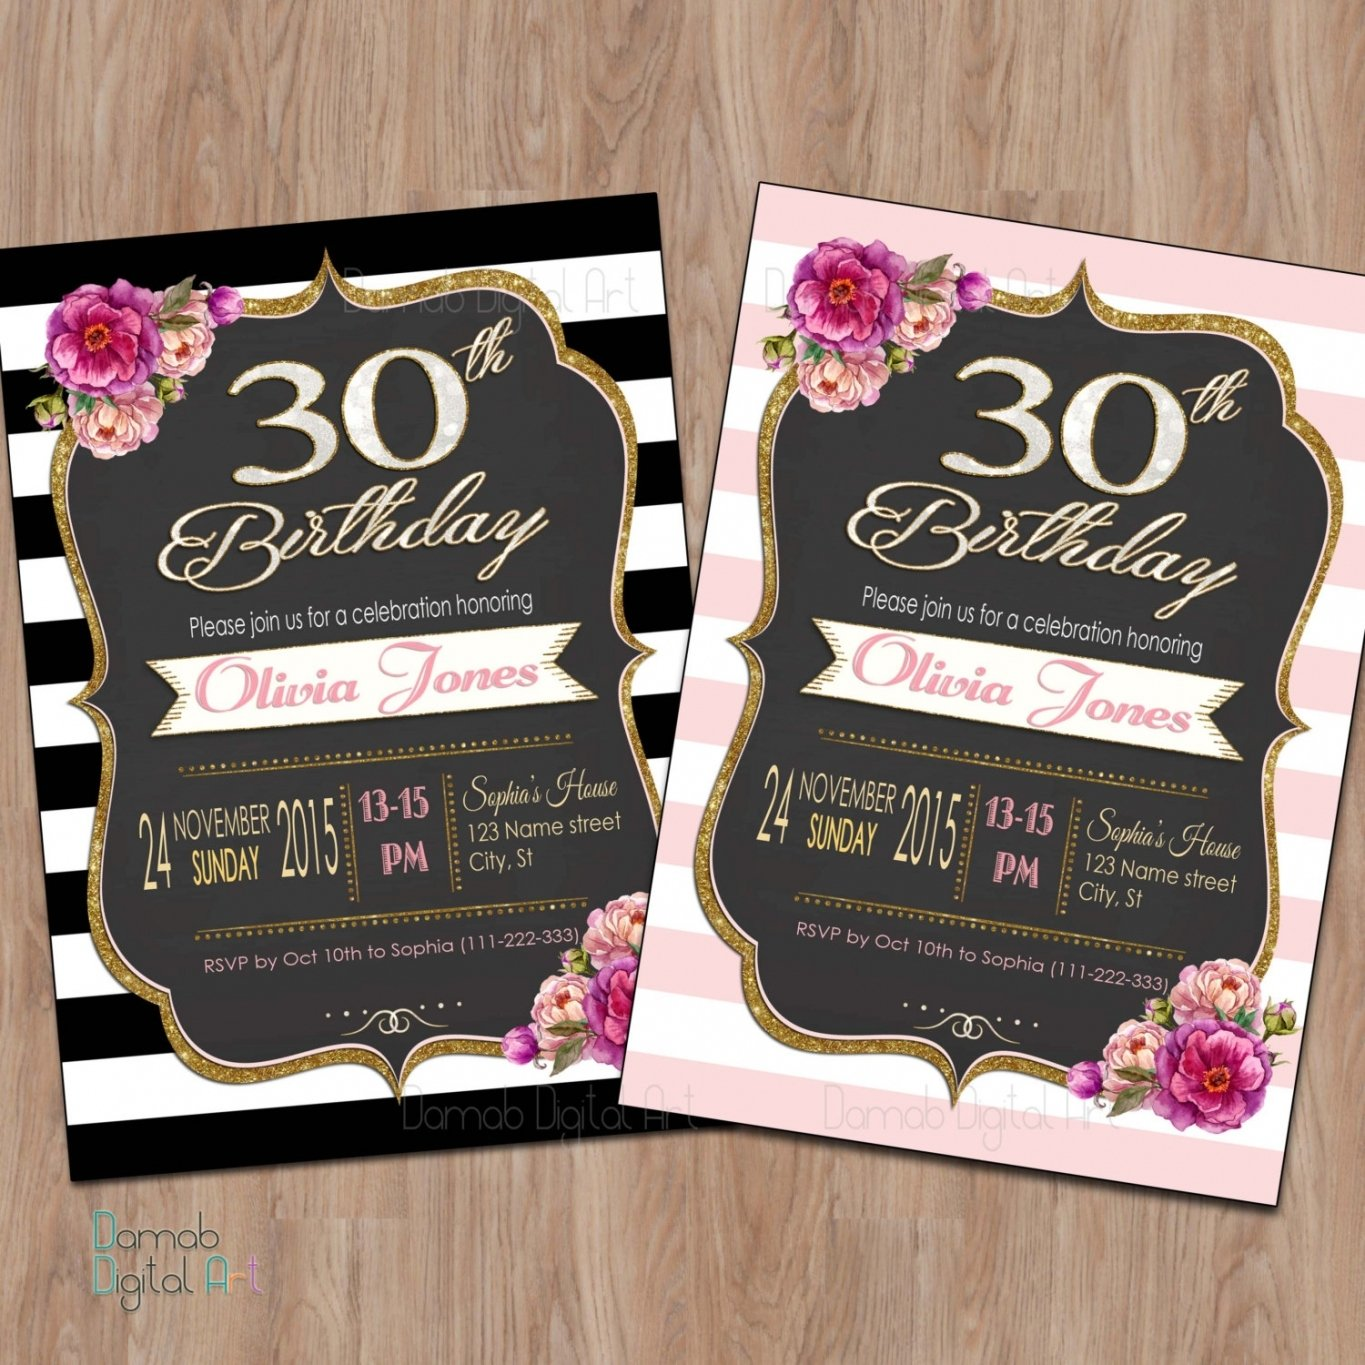 10 Cute 30Th Bday Ideas For Her tips to create 30th birthday party invitations for her ideas 3 2020